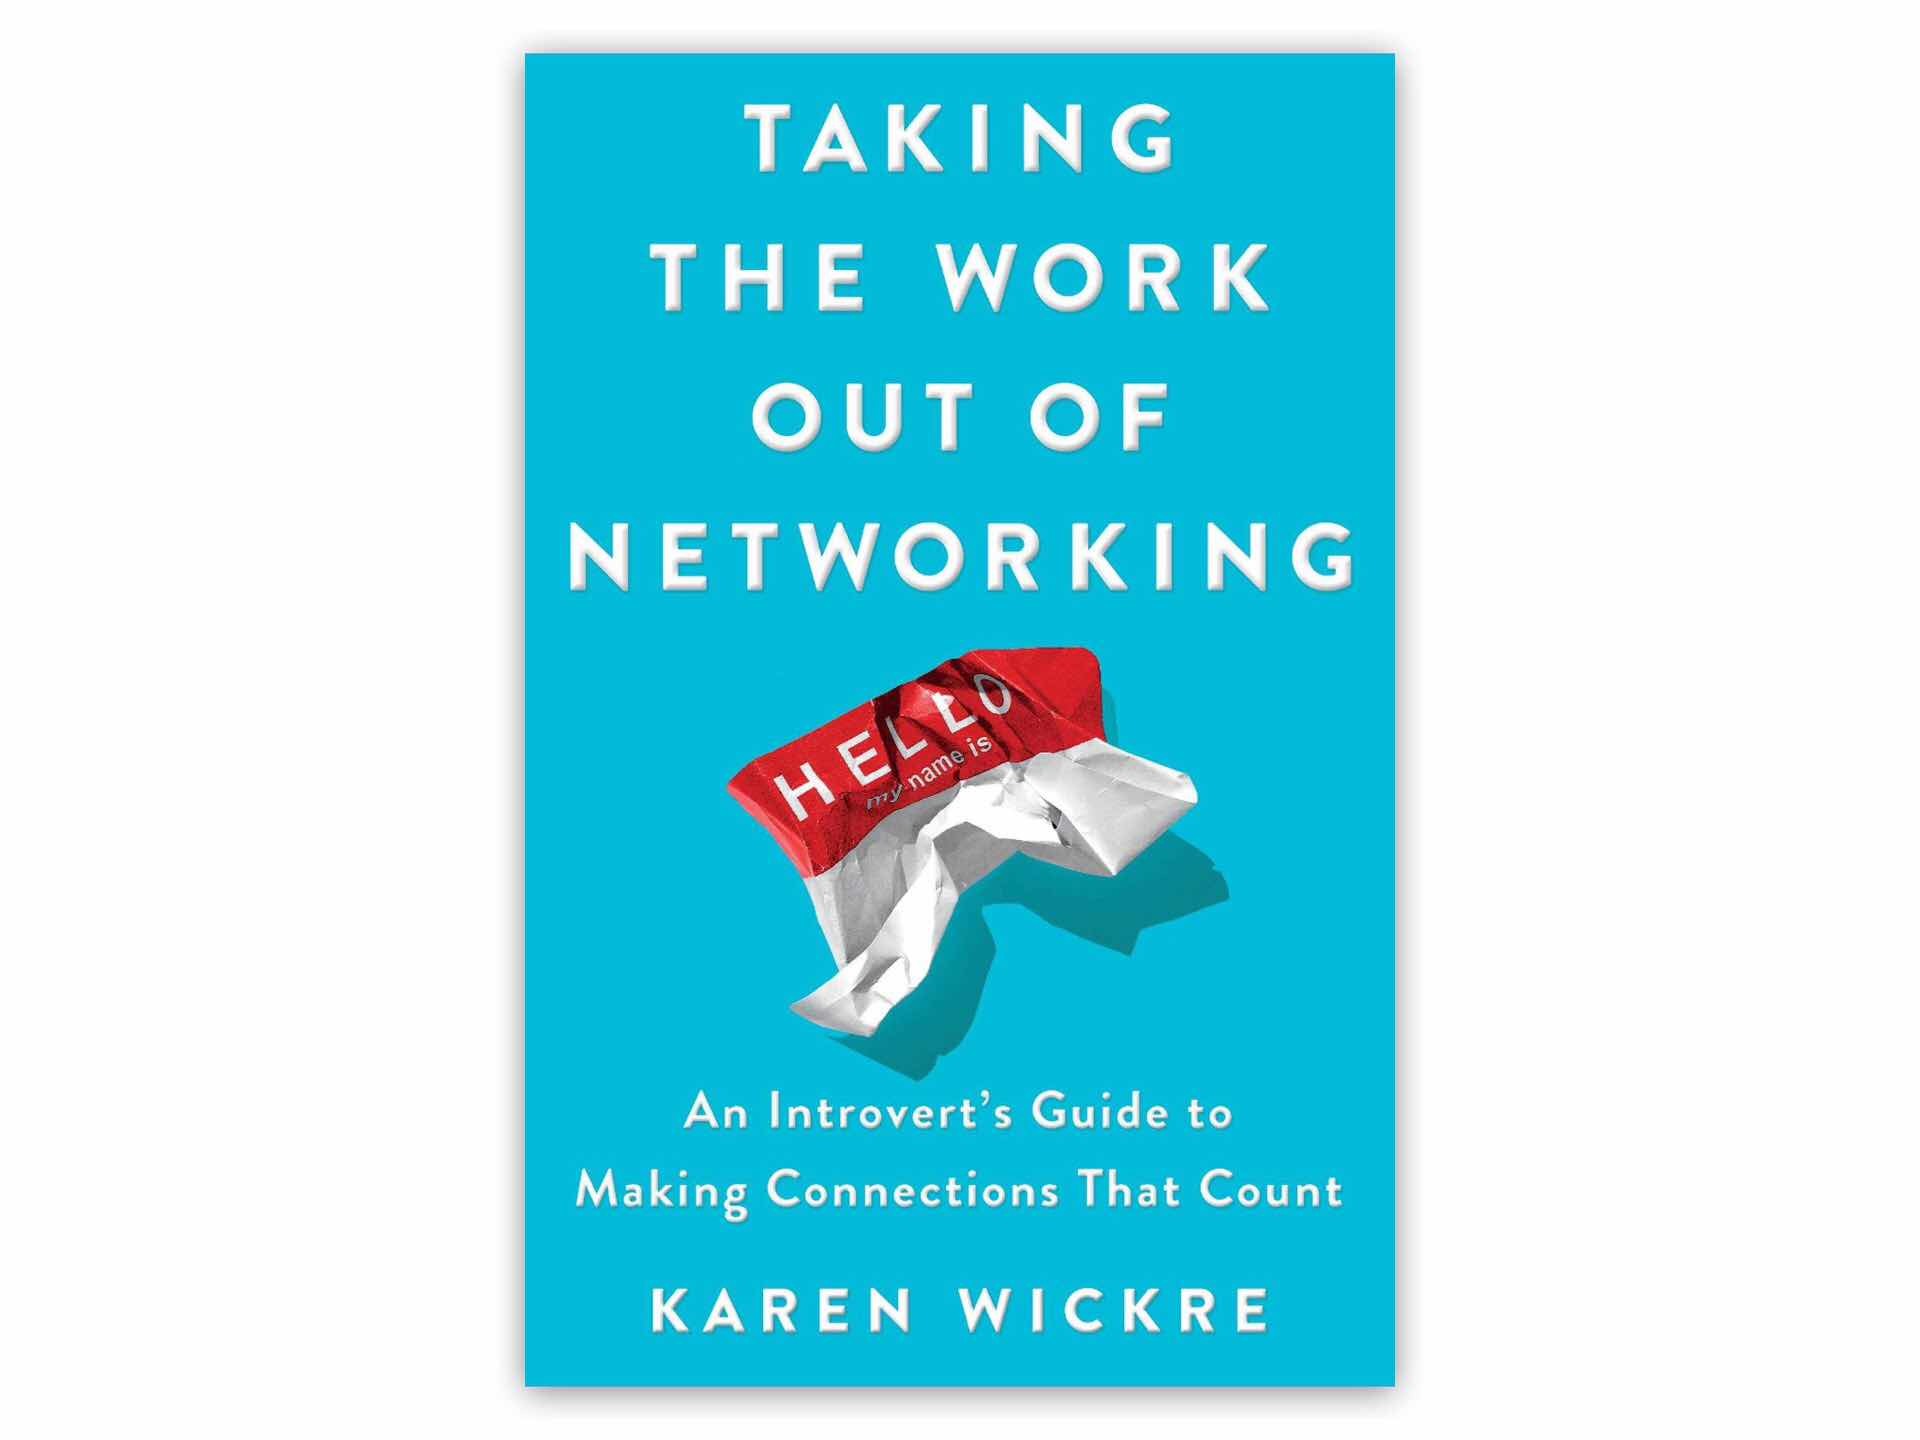 Taking the Work Out of Networking by Karen Wickre. ($16 hardcover, $16 paperback)